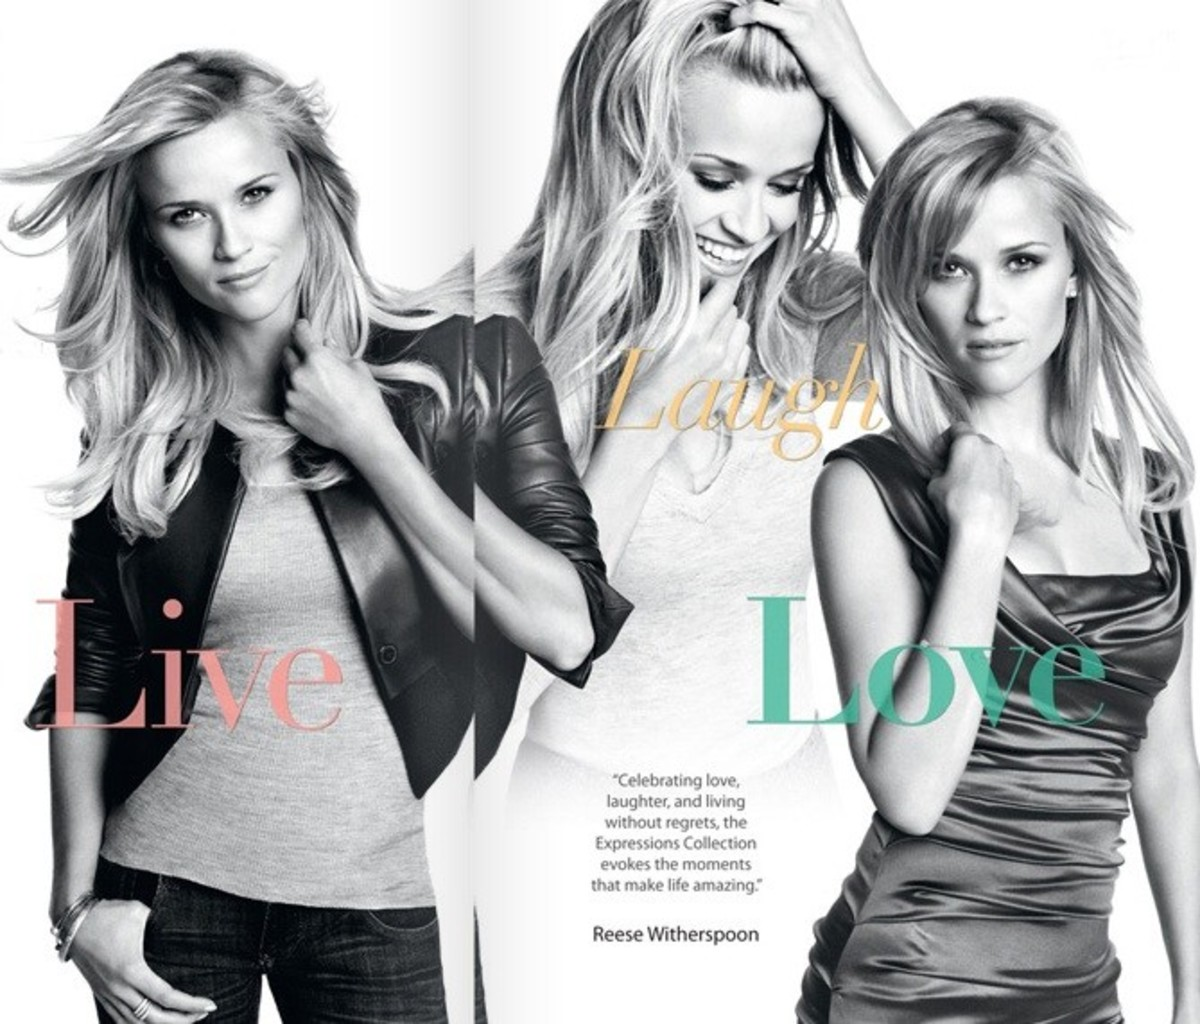 reese_witherspoon_Avon